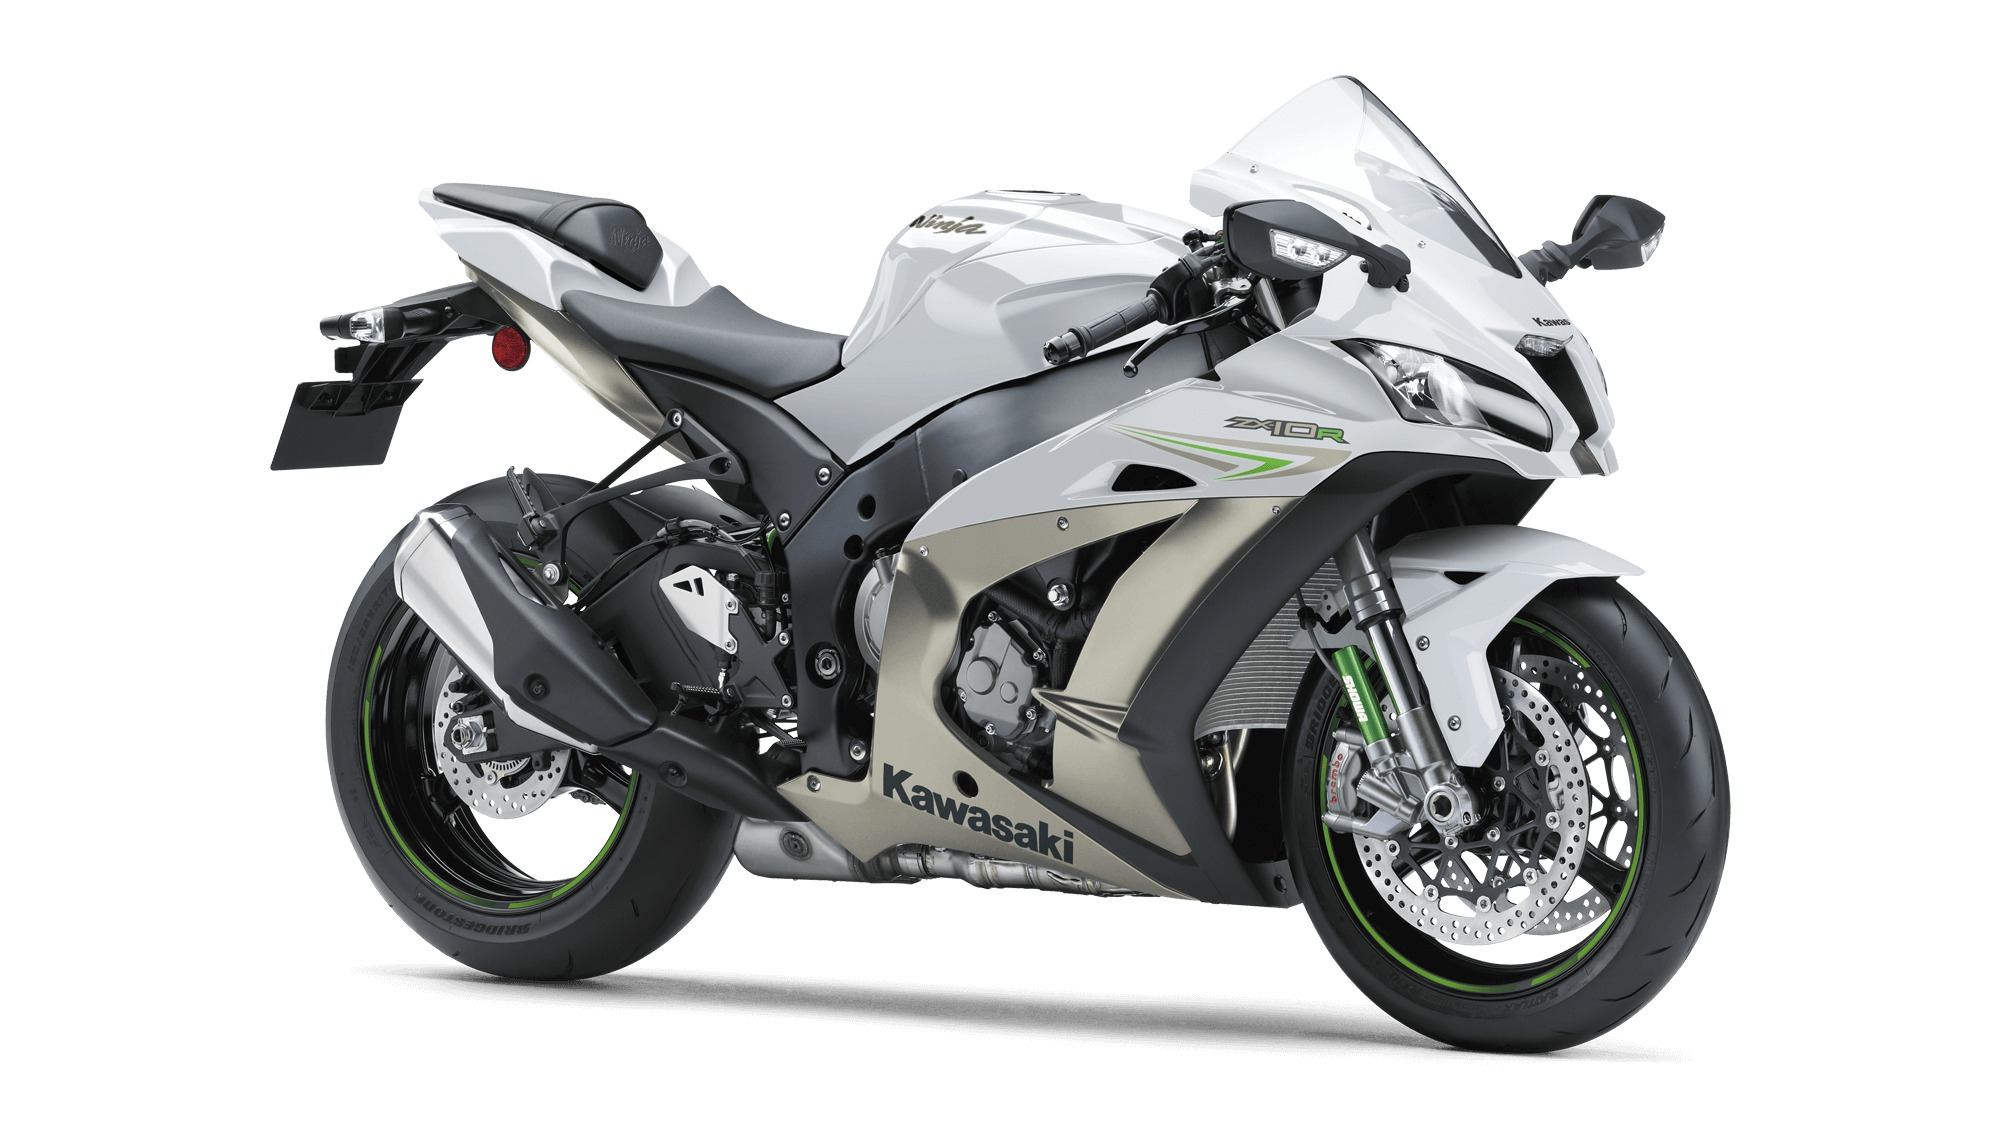 <em>Kawasaki NINJA ZX-10R ABS KRT EDITION Motorcycles</em> for Sale